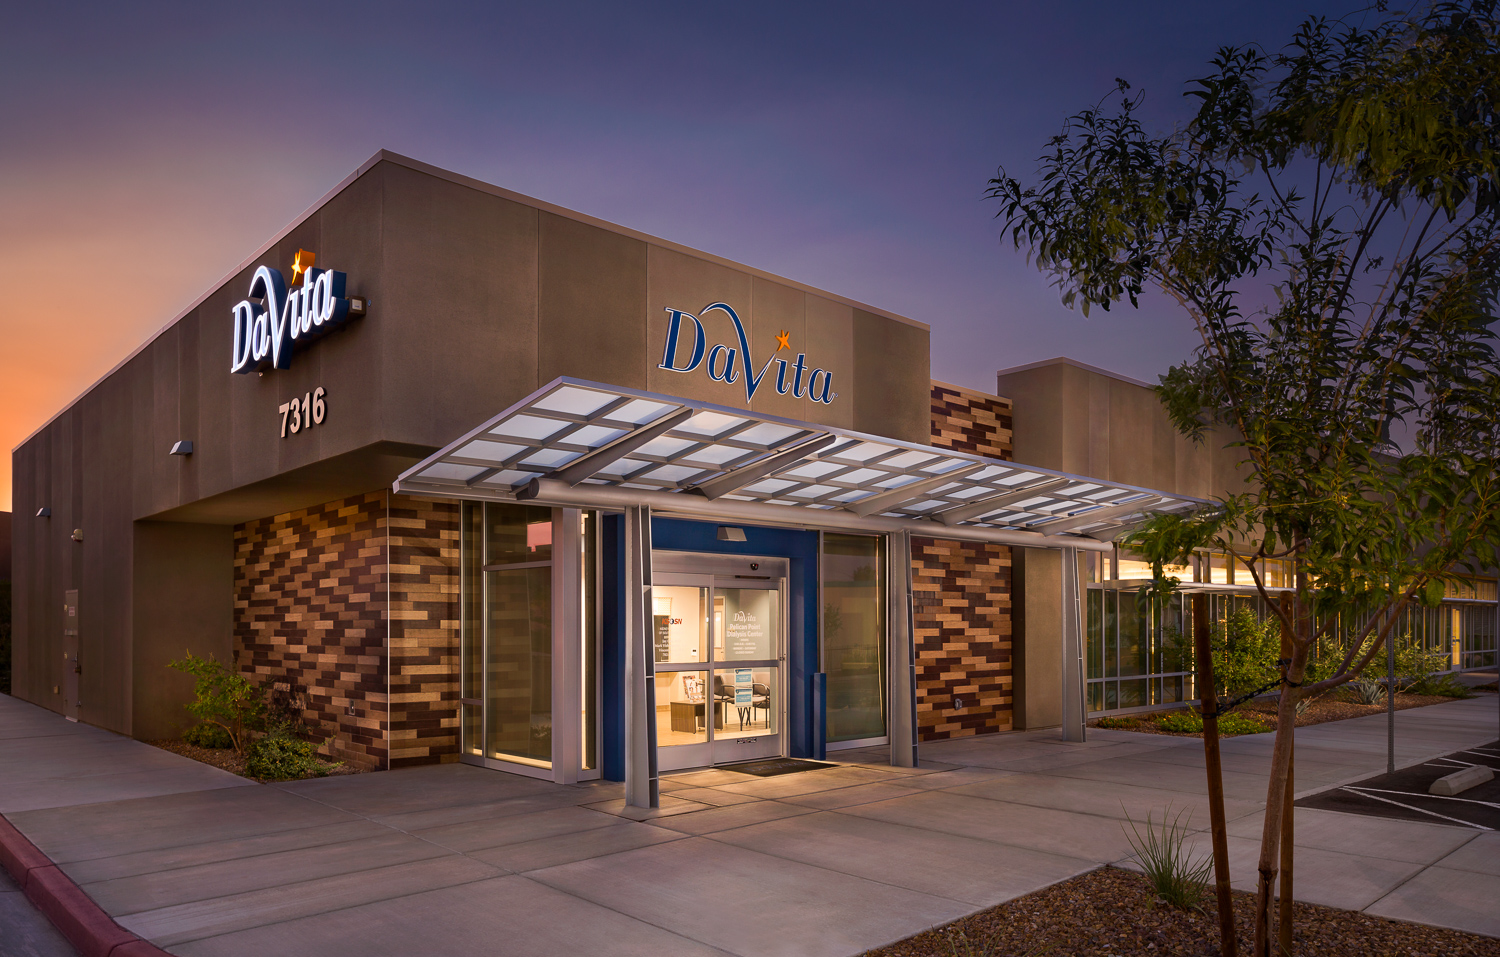 Davita Dialysis, Las Vegas, NV. Daniel S. Amster (Dakem & Associates, LLC), architect.